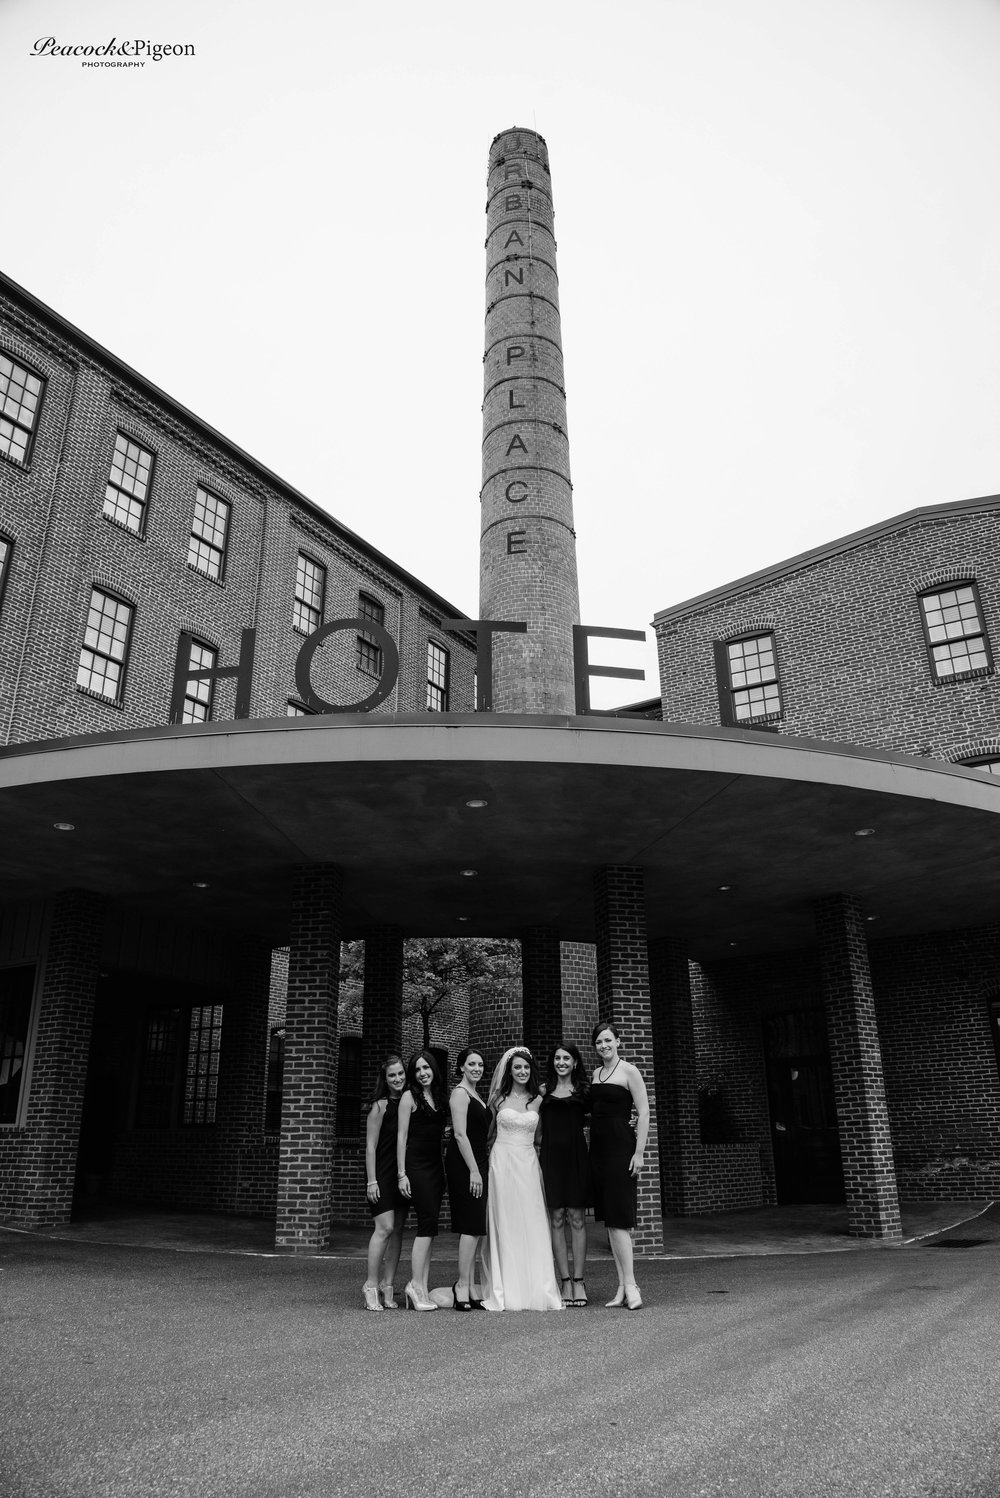 Callum_and_Sara's_Wedding_at_the_Cork_Factory_Hotel_in_Lancaster-Part_Two_The_Bride_Bridesmaids_and_Family_Black_and_White_Watermarked-36.jpg